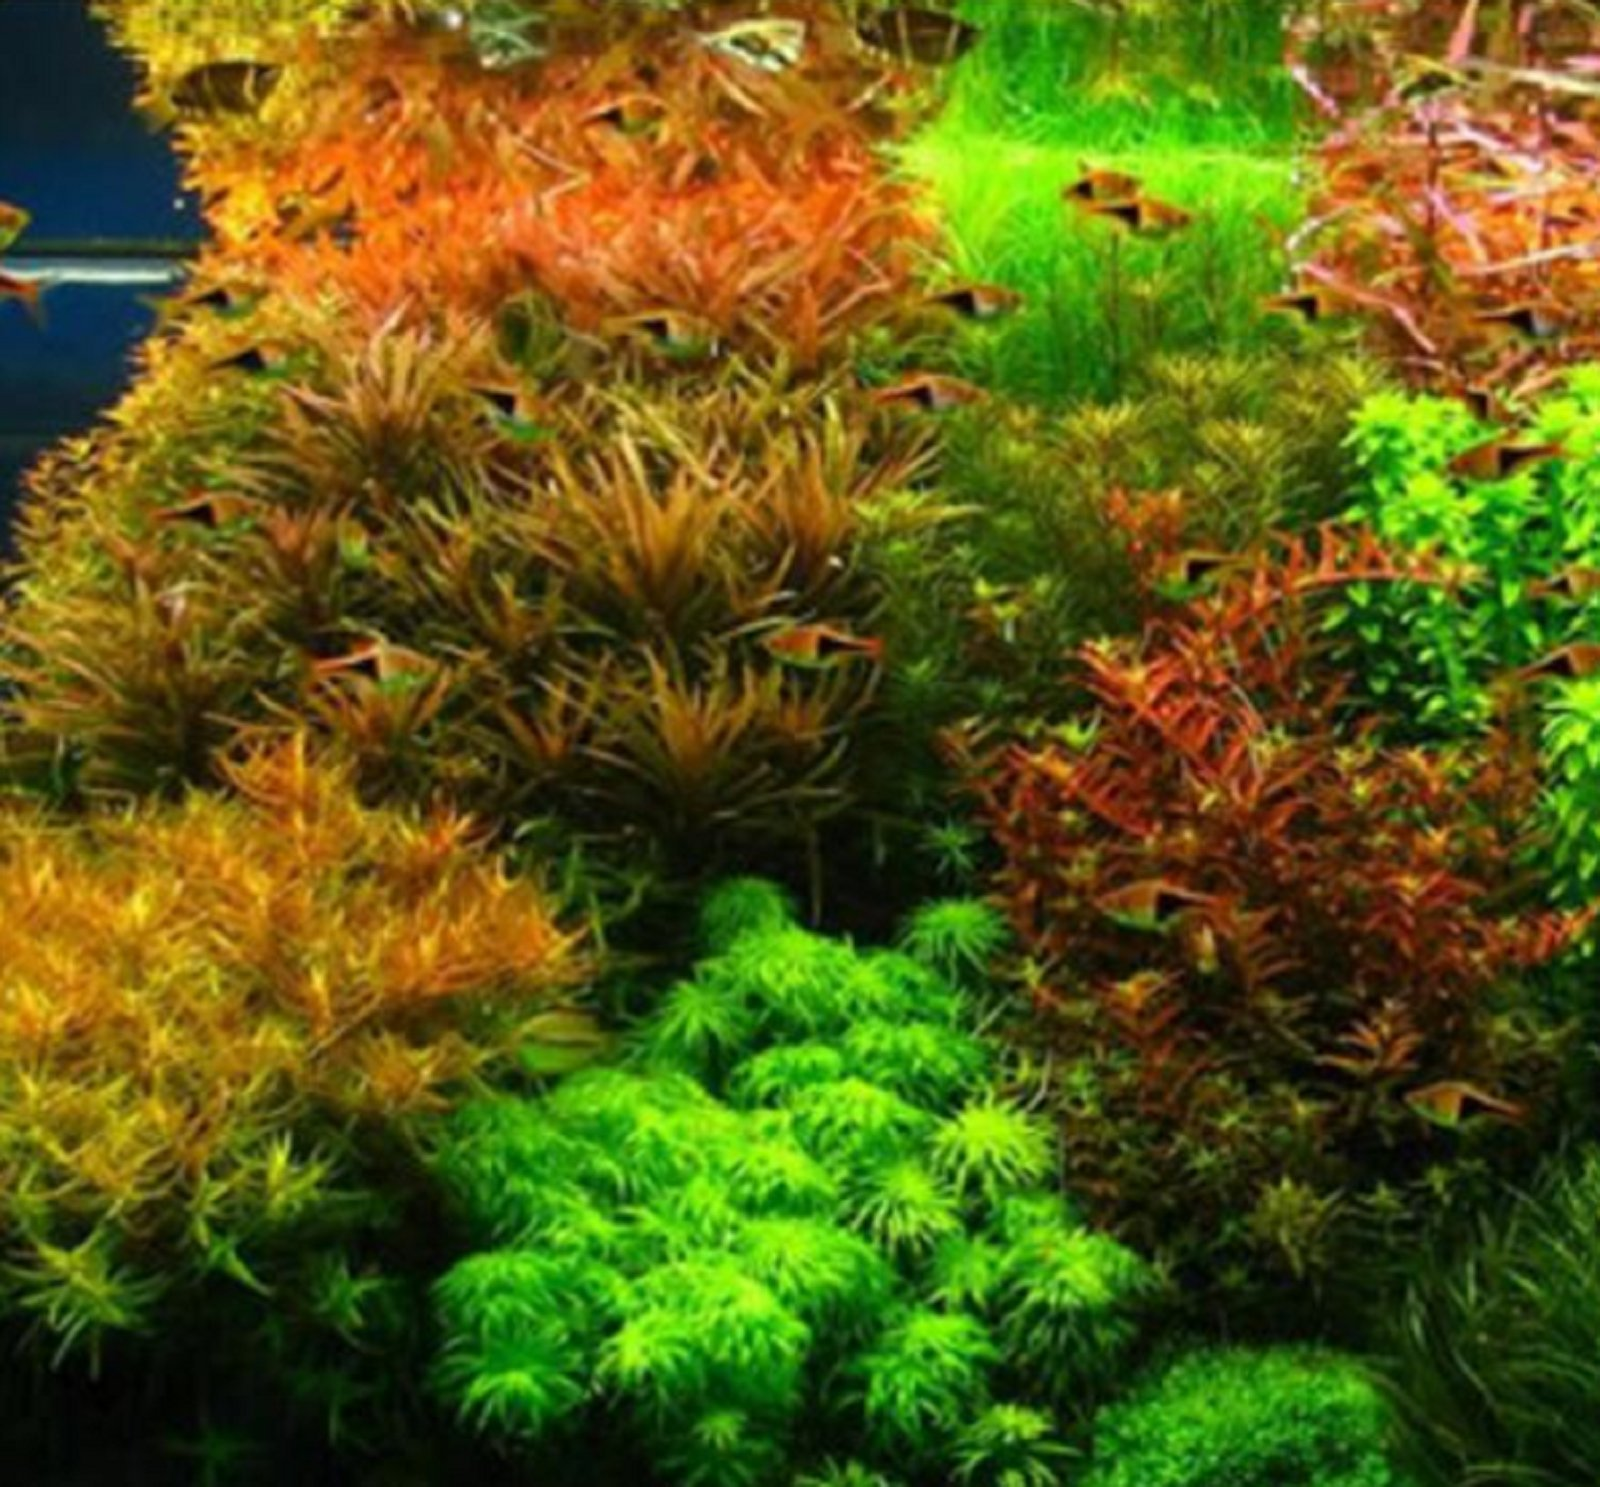 Hot Sale! Hot Pellia Java Fish Tank Aquatic Seeds For Live Fish Moss Fern Aquarium Plant Landscape Decoration Ornament 1000 Pcs/bag